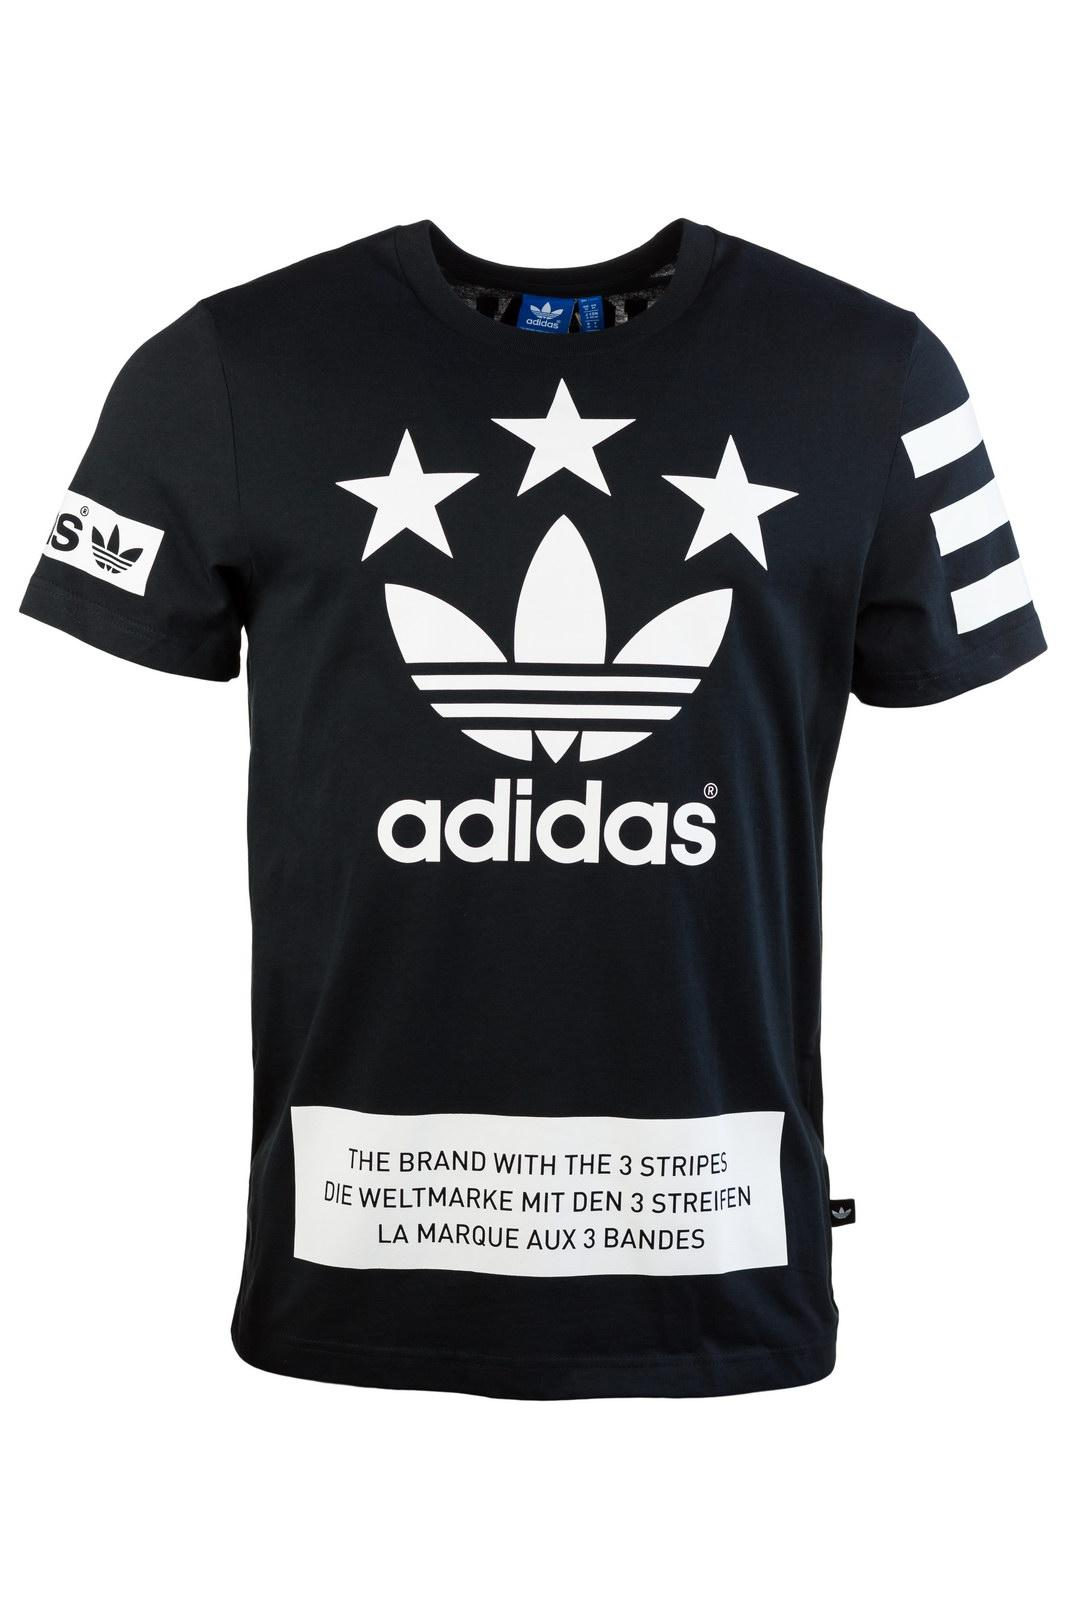 Adidas t shirts 2017 adidas for Adidas lotus t shirt